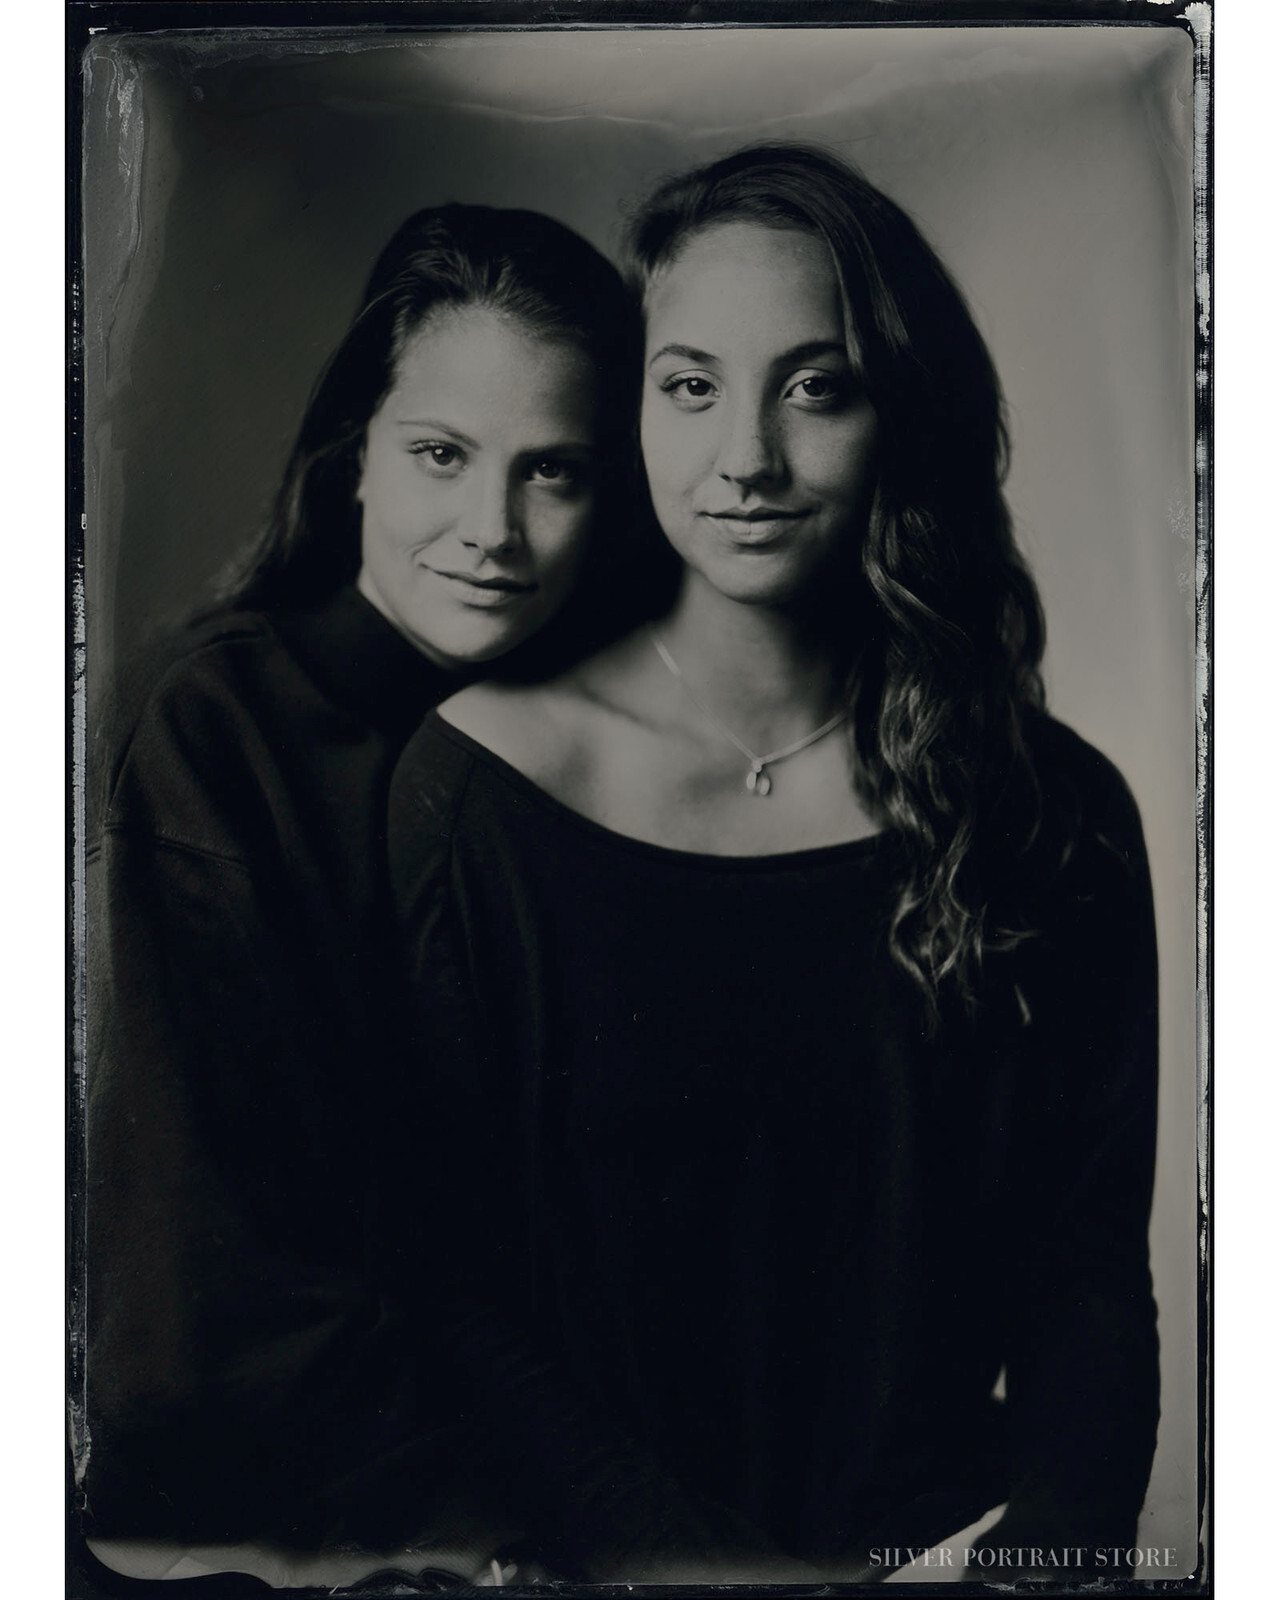 Kathrin & Astrid-Silver Portrait Store-Scan from Wet plate collodion-Tintype 13 x 18 cm